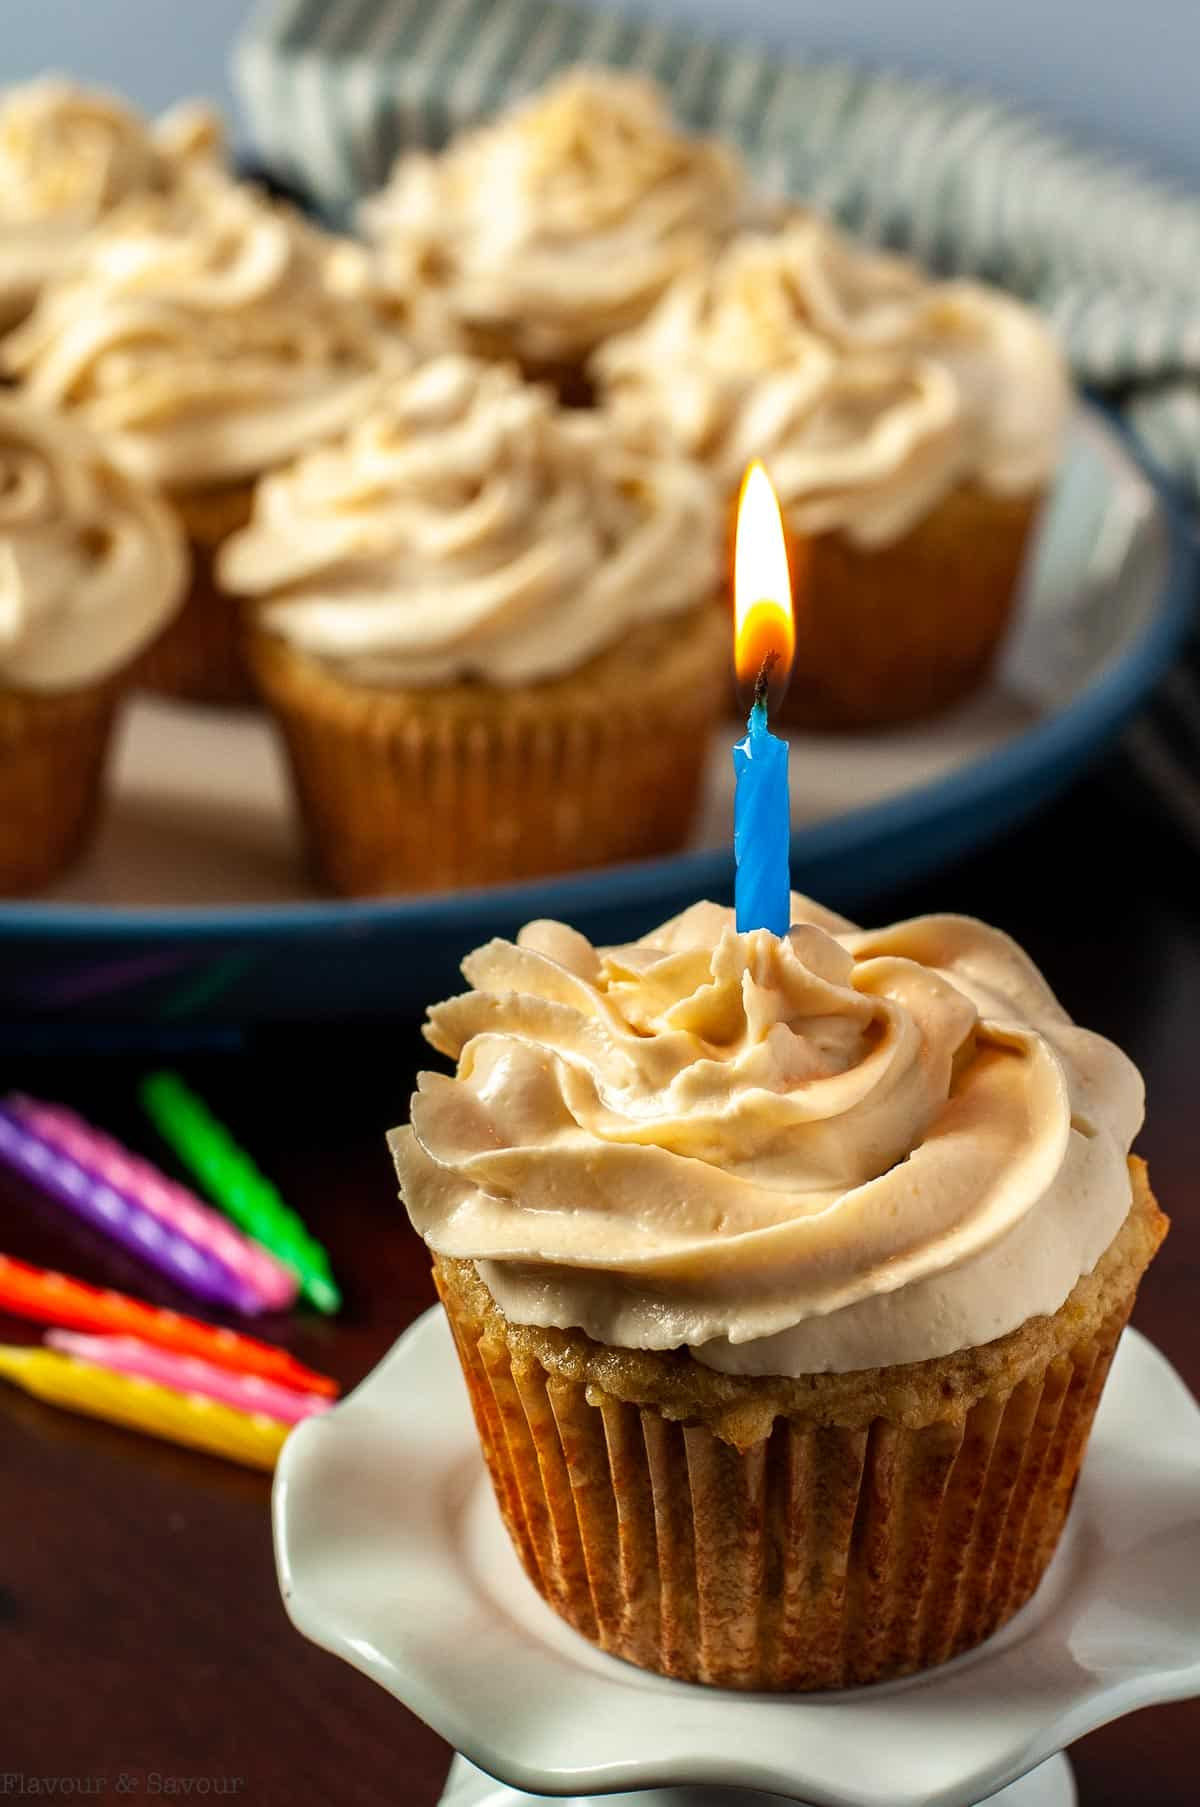 A frosted banana cupcake with a lit birthday candle